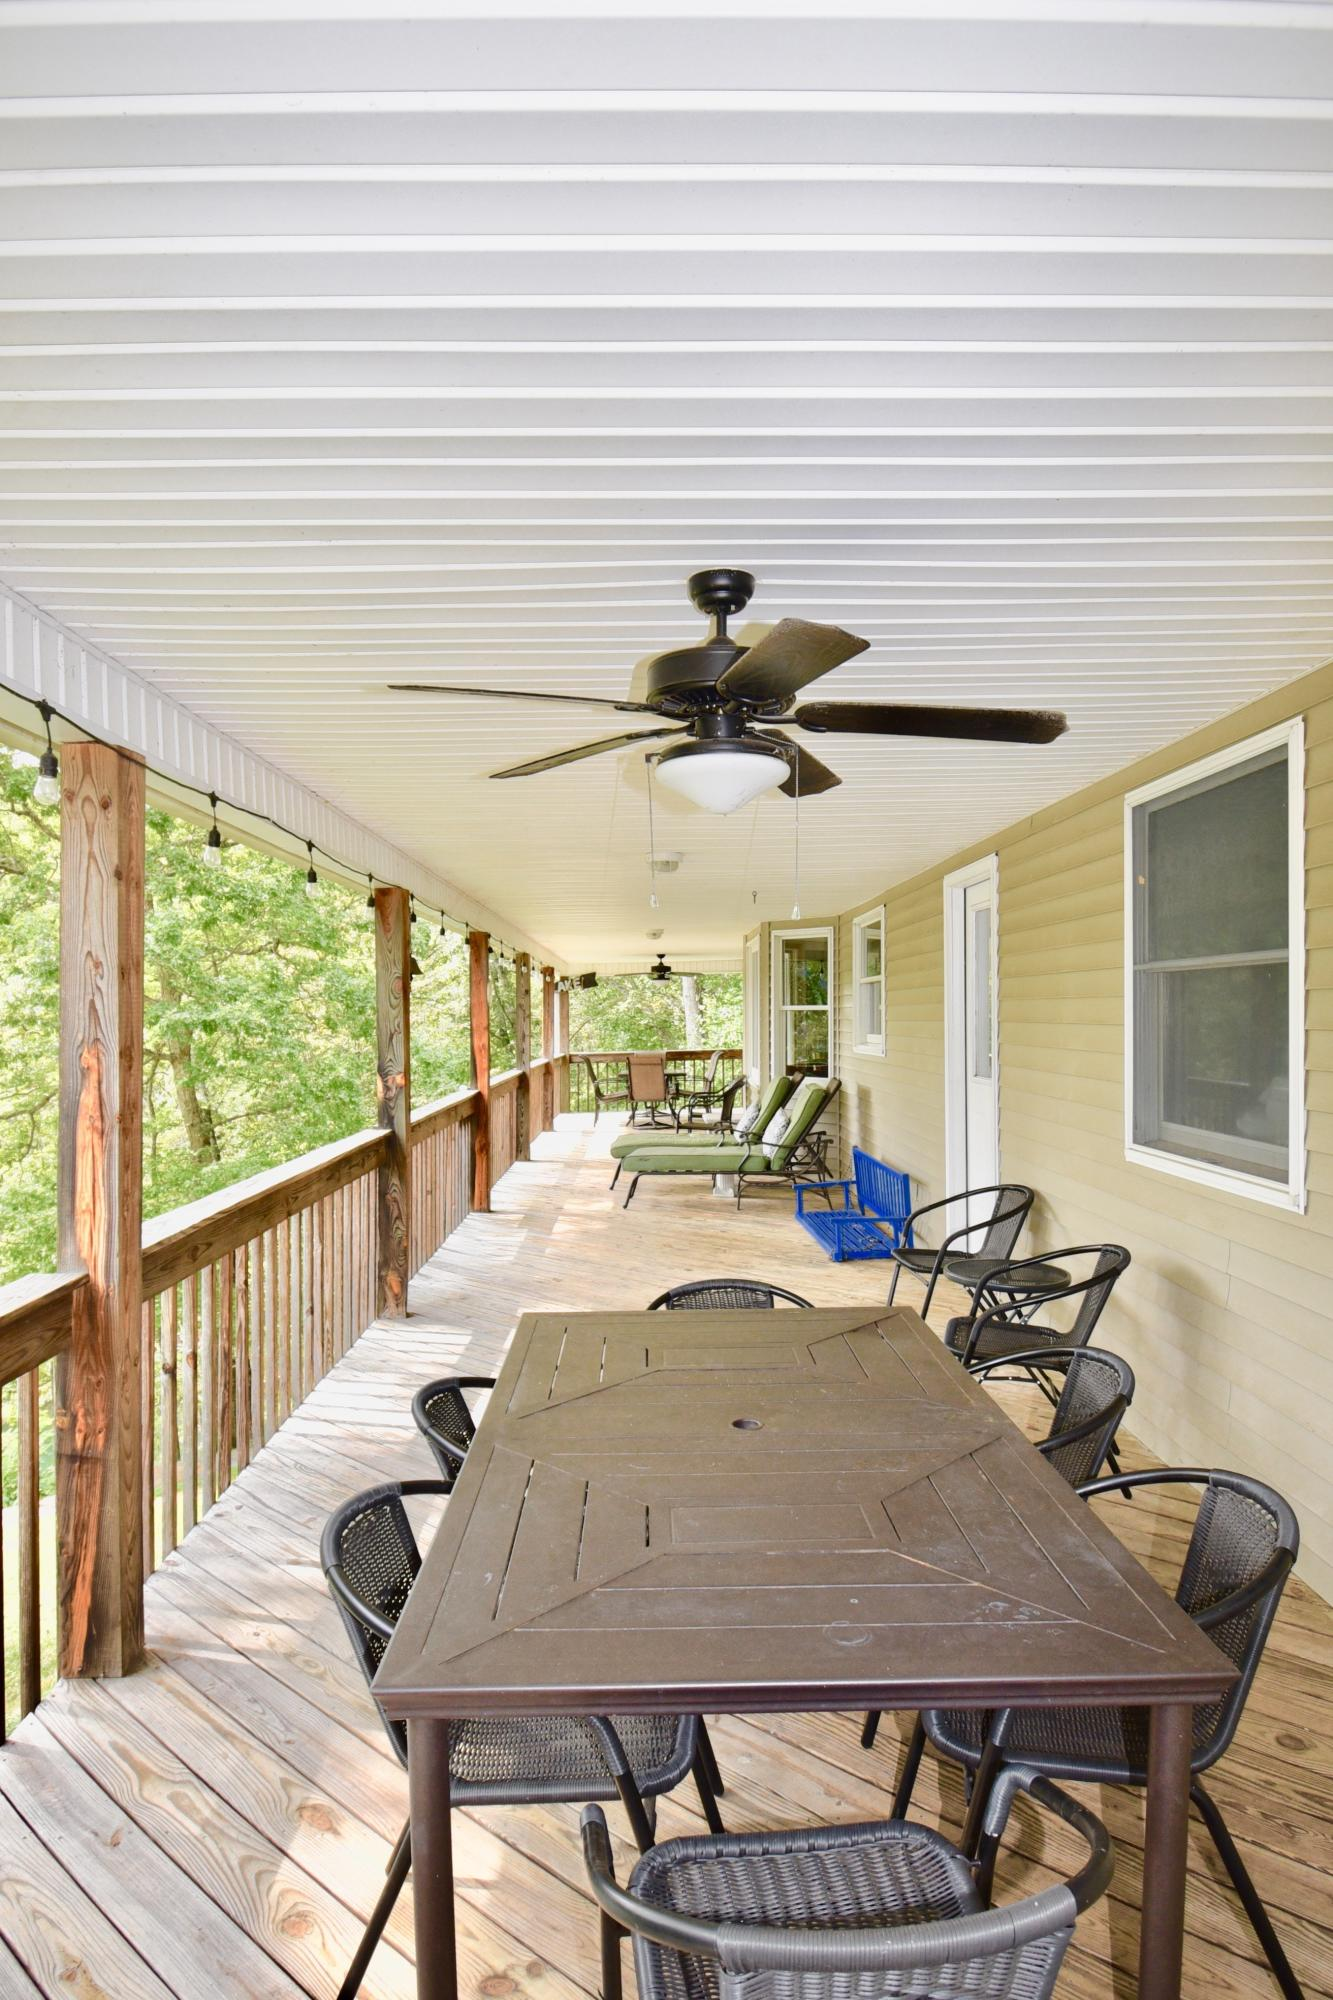 1421 Big Creek Rd: